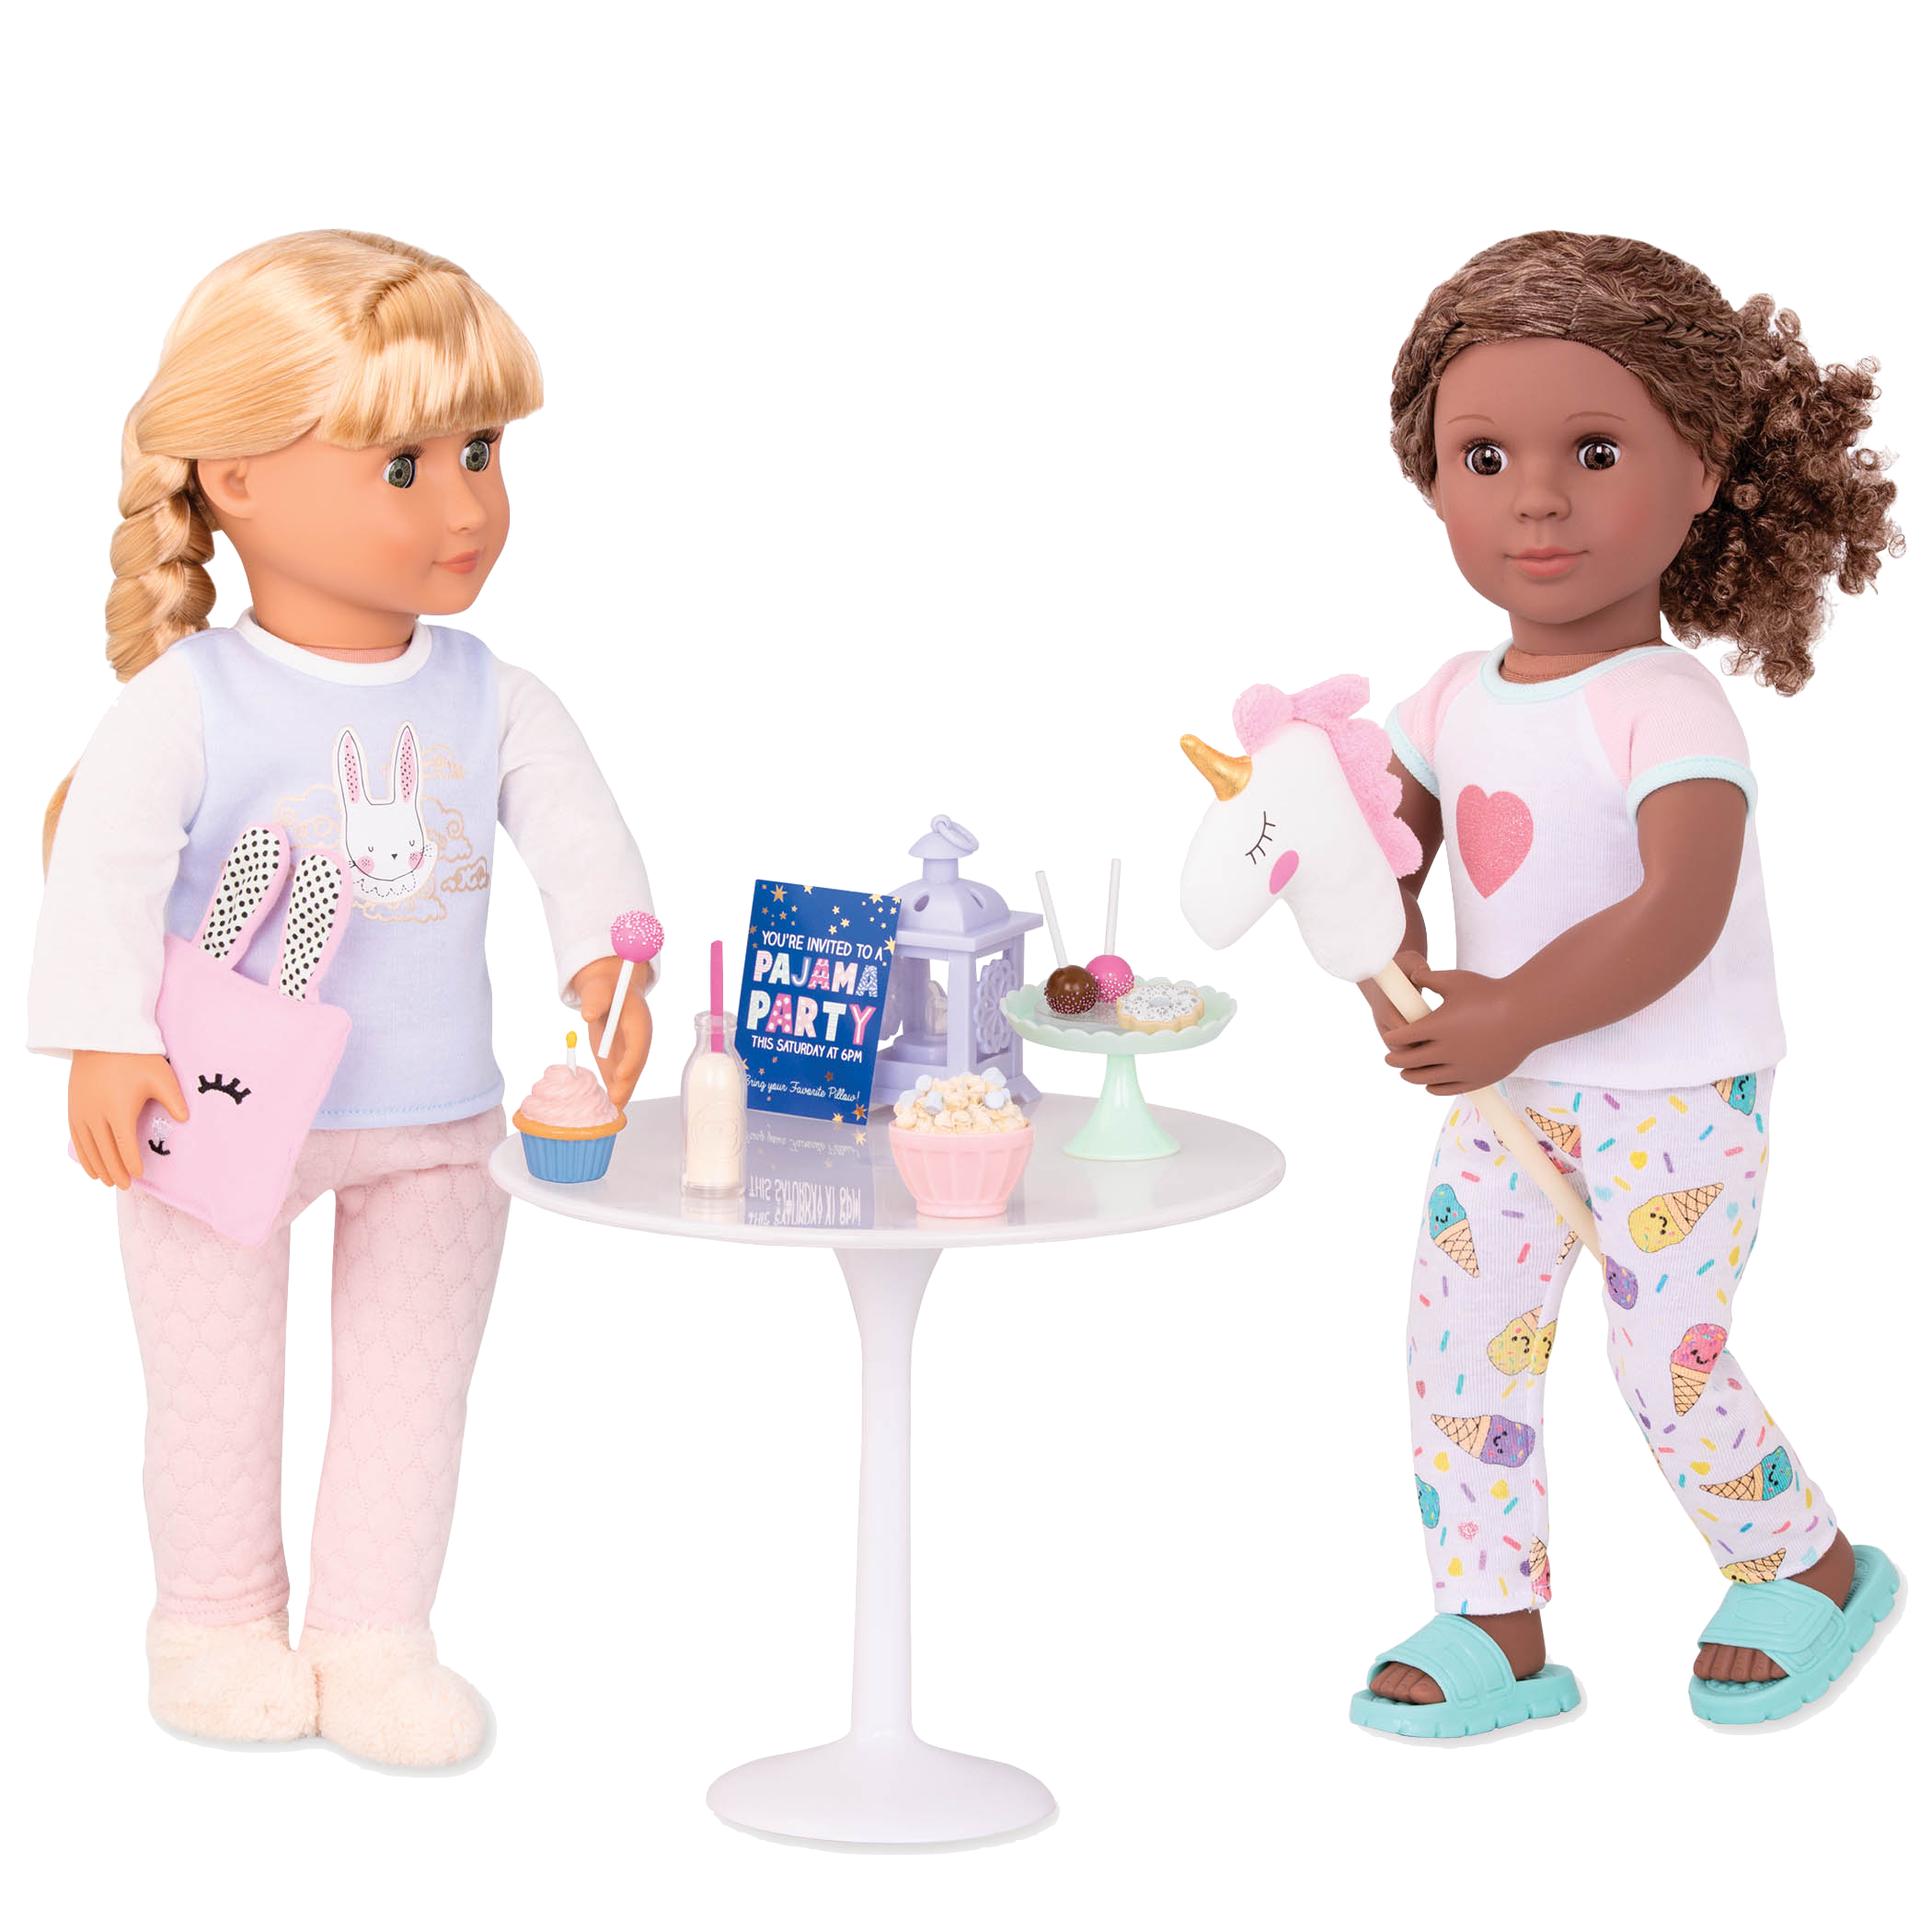 Jovie and Denelle having a sleepover party